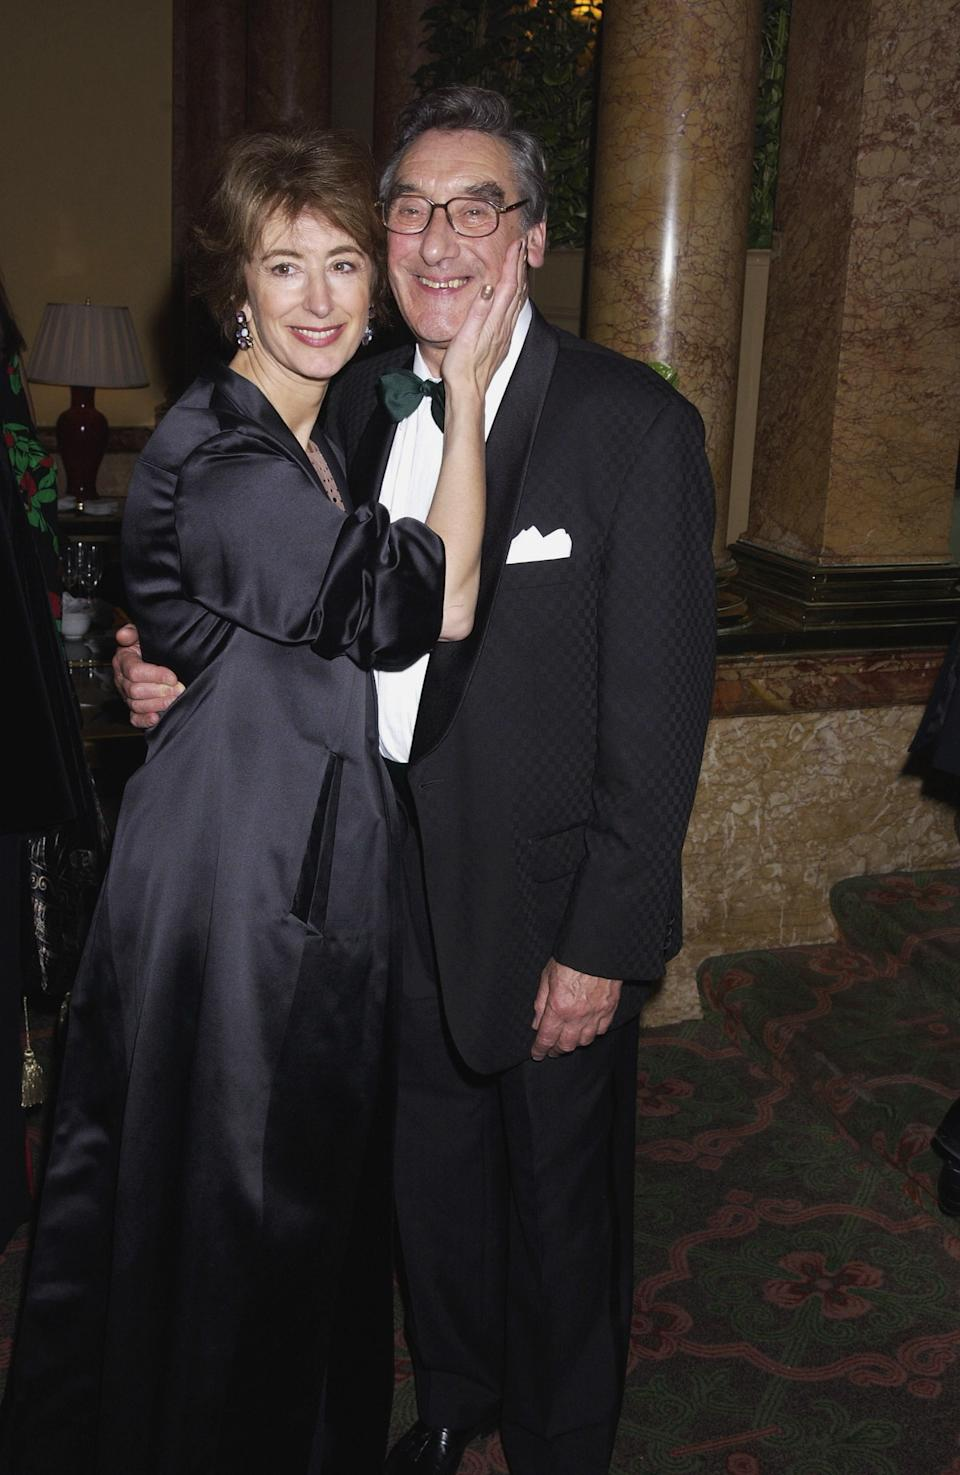 Maureen Lipman and her husband Jack Rosenthal arrive at the first night party for the one woman production Elaine Stritch at the Liberty at the Old Vic Theatre.The party was held at the Savoy Hotel,London on the 9th of October 2002.(Photo by Dave Benett/Getty Images)